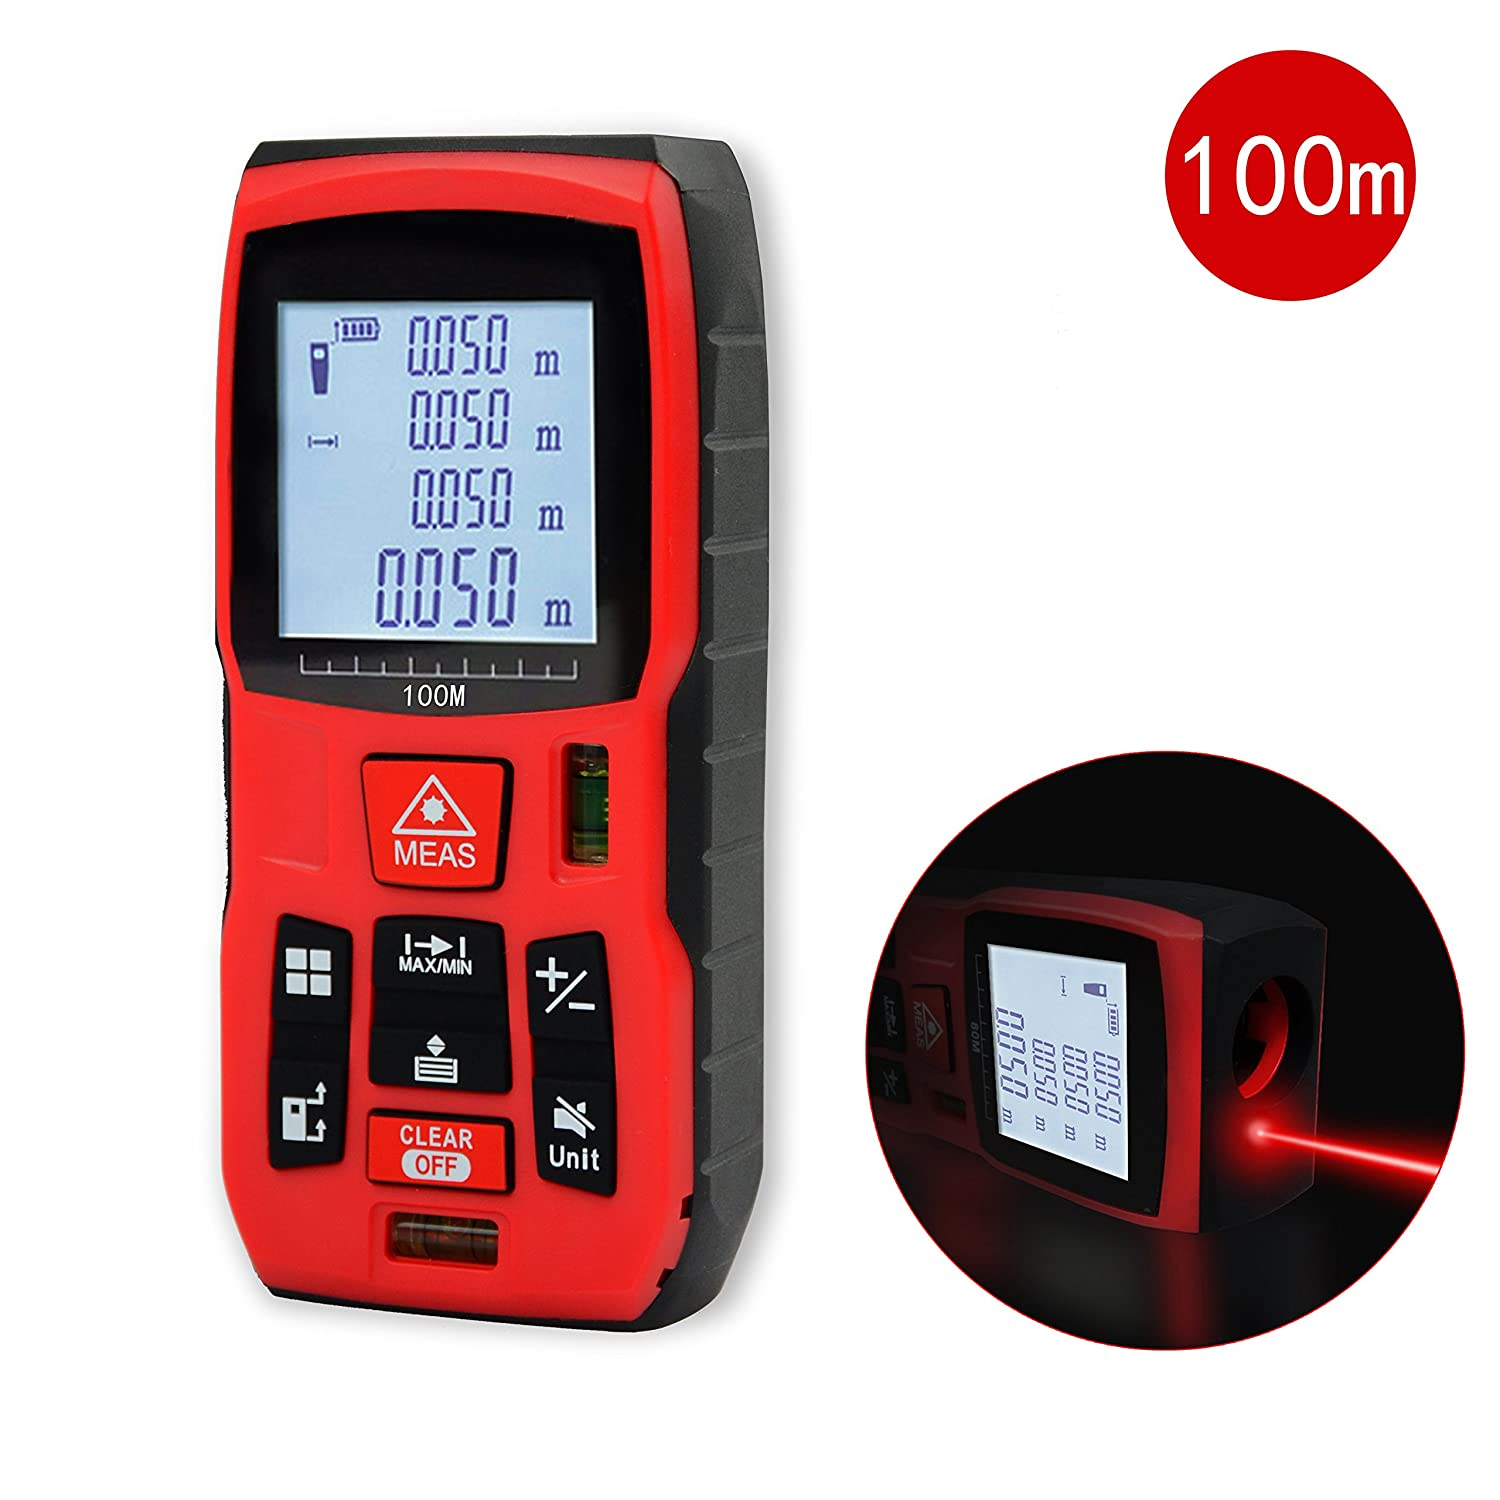 Qyuhe® Laser Measure Distance Meter 80M/262.5ft Measuring Device Tool with Backlit Display